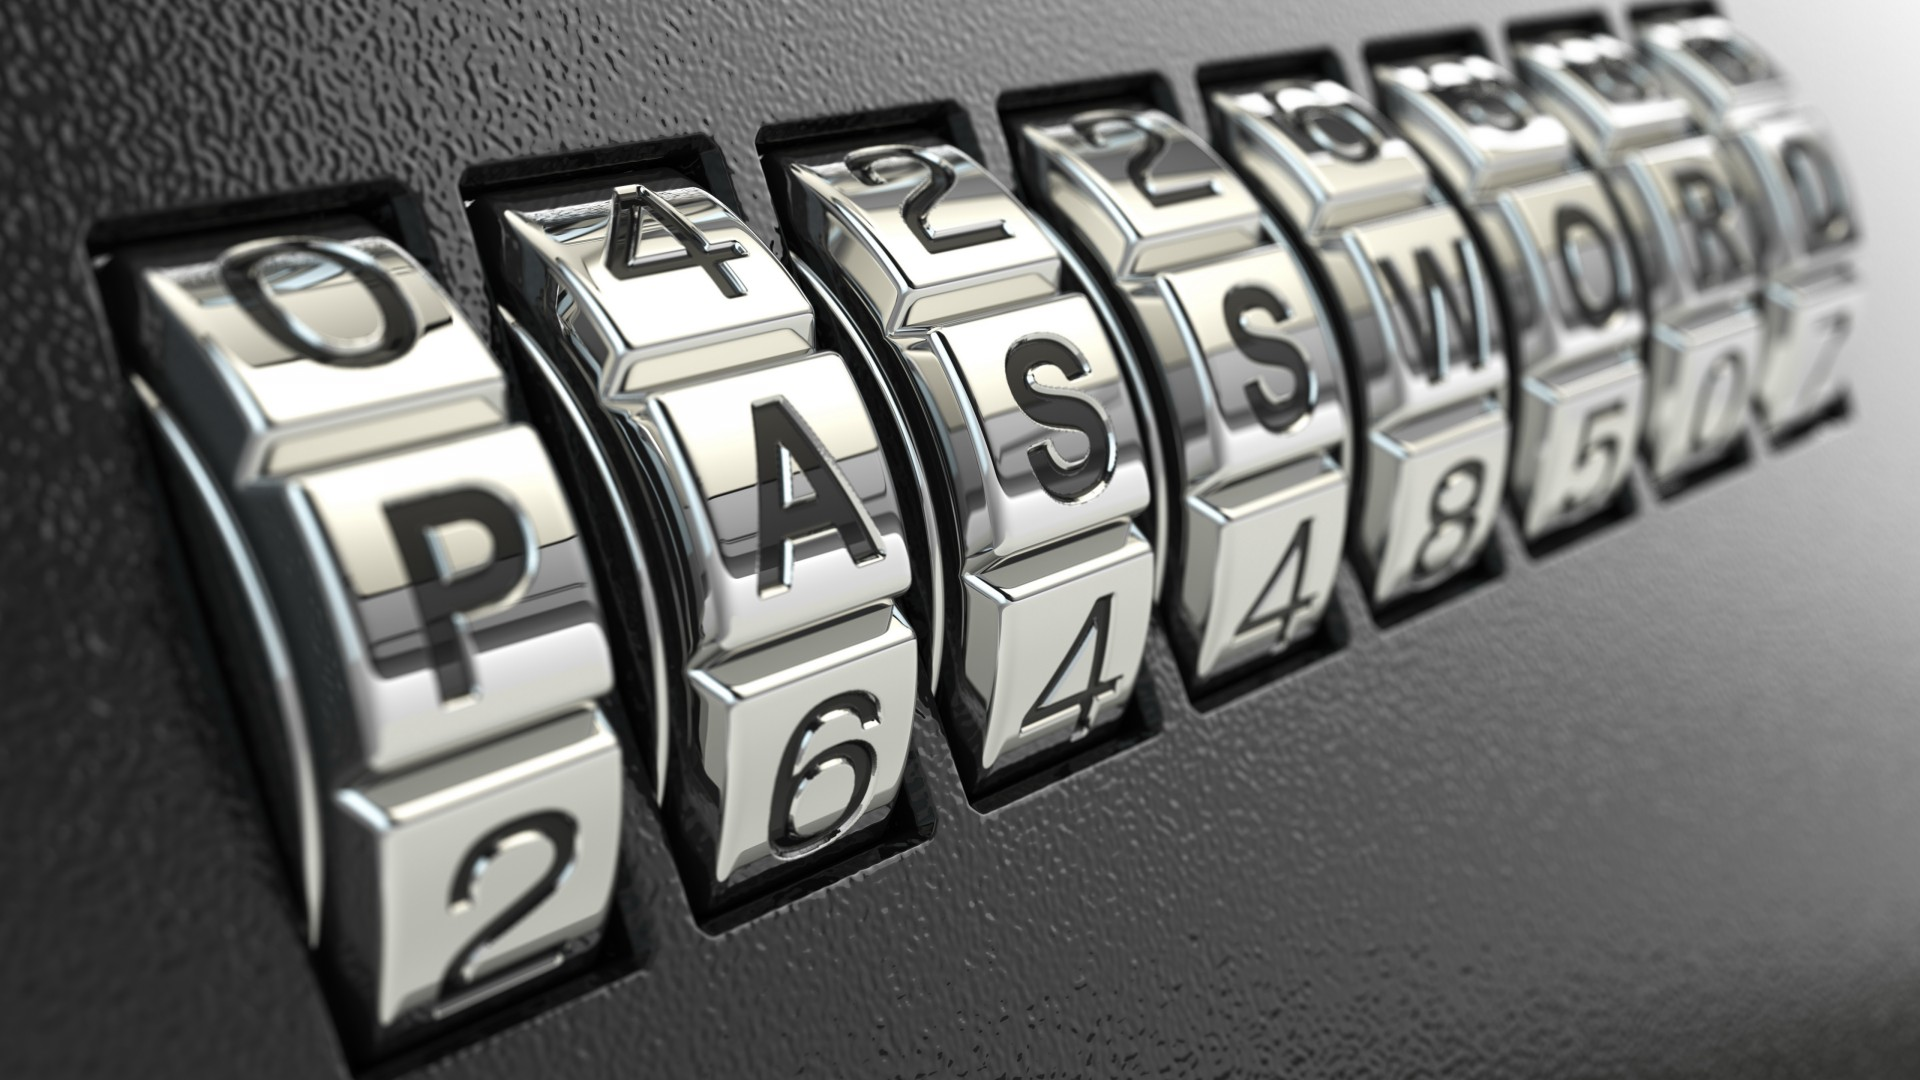 Password Reset - $97.00 Reset password on Windows 7, 8, 10 Computers: We can reset most basic passwords as long as they are not ICloud or Outlook passwords. We will than need to try and reset your password through another method.